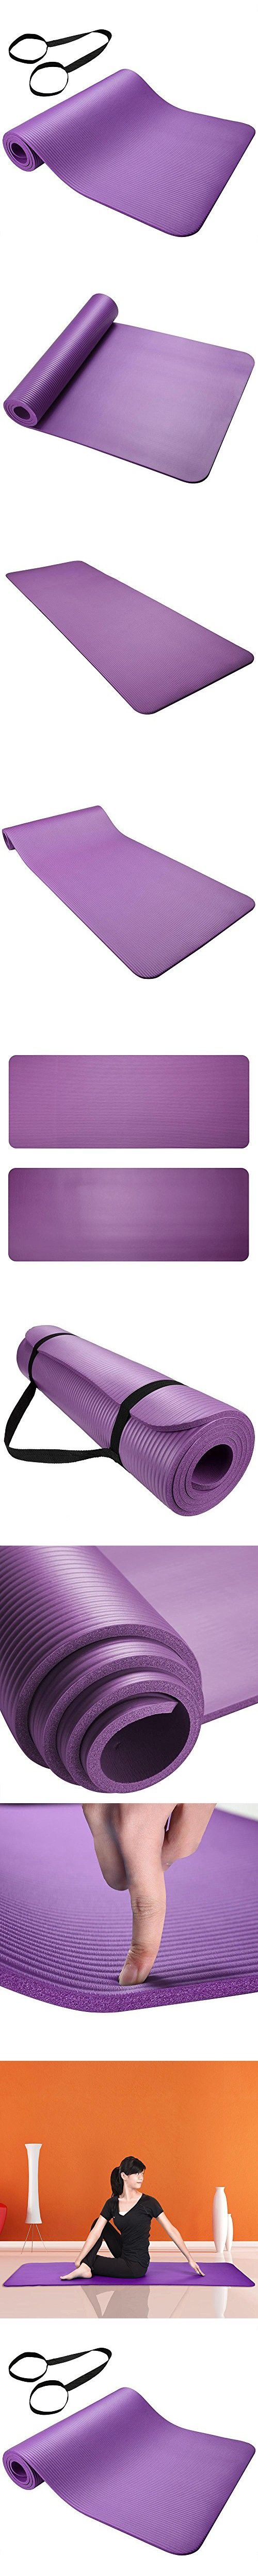 "AW Yoga Purple Exercise Mat 0.31""/8mm Thick NBR Anti-Slip w/ Carrying Strap Sport Comfort Foam"